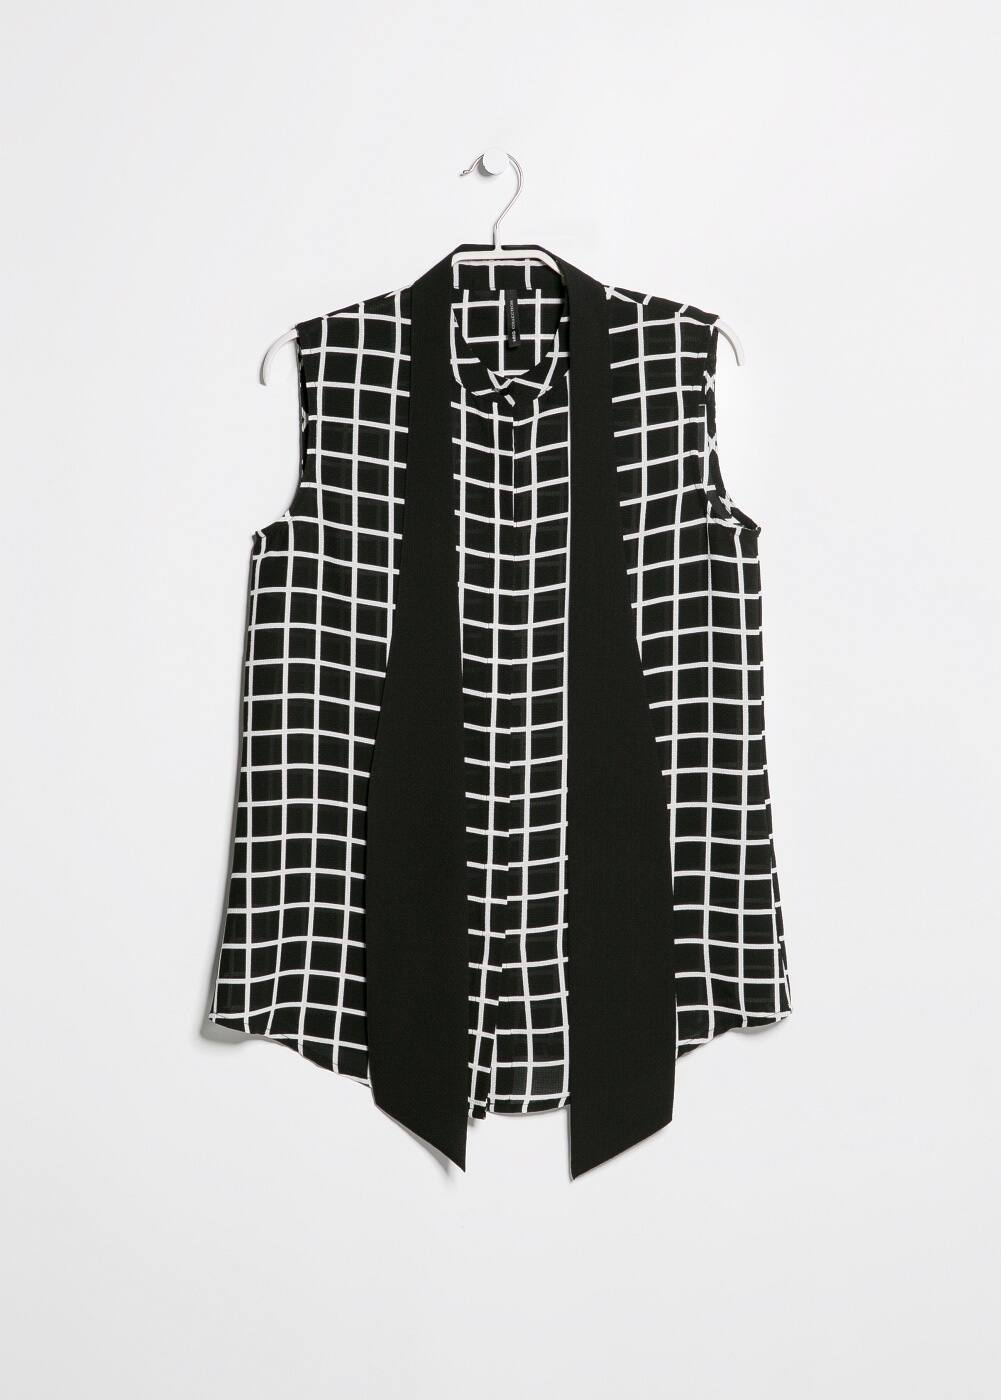 Bow check shirt